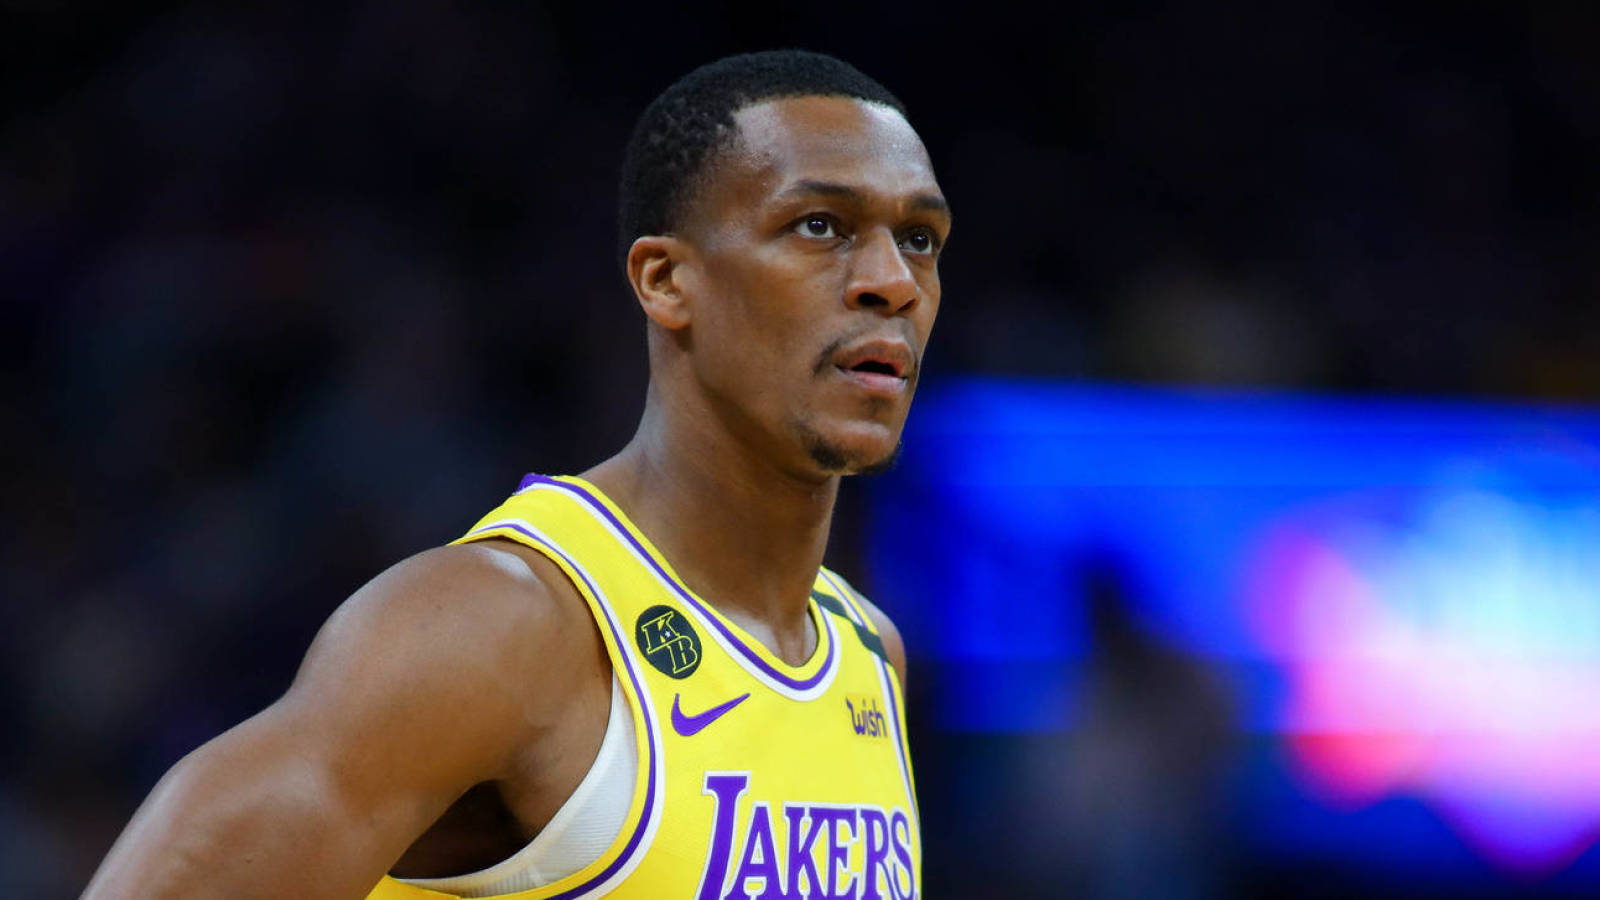 Rajon Rondo to return to Orlando tomorrow, away from campus